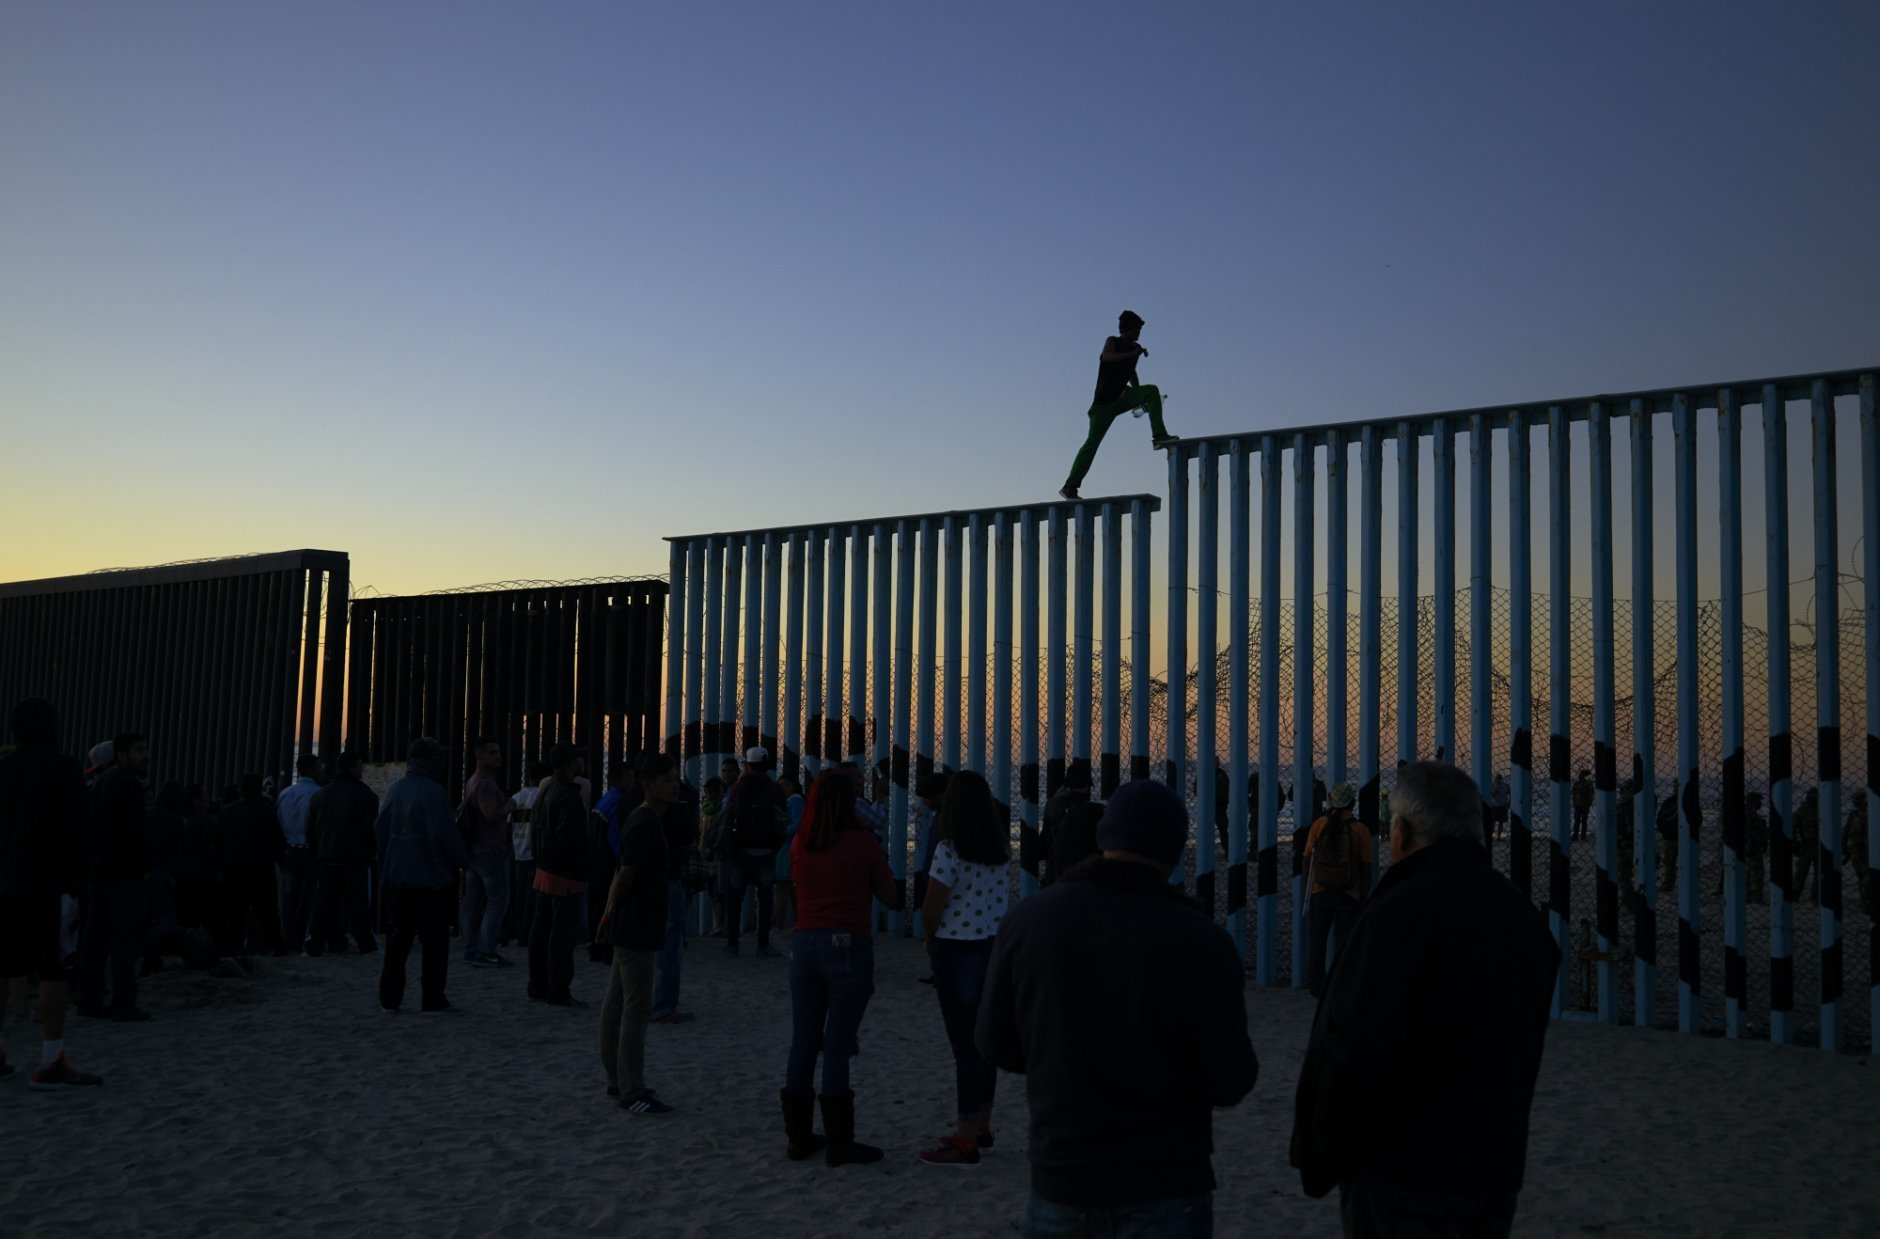 In this Nov. 14, 2018 picture, a man from Honduras walks along the top of the border structure separating Mexico and the United States, in Tijuana, Mexico. With about 3,000 Central American migrants having reached the Mexican border across from California and thousands more anticipated, the city of Tijuana continues to prepare for an influx that will last at least six months and may have no end in sight. (AP Photo/Gregory Bull)